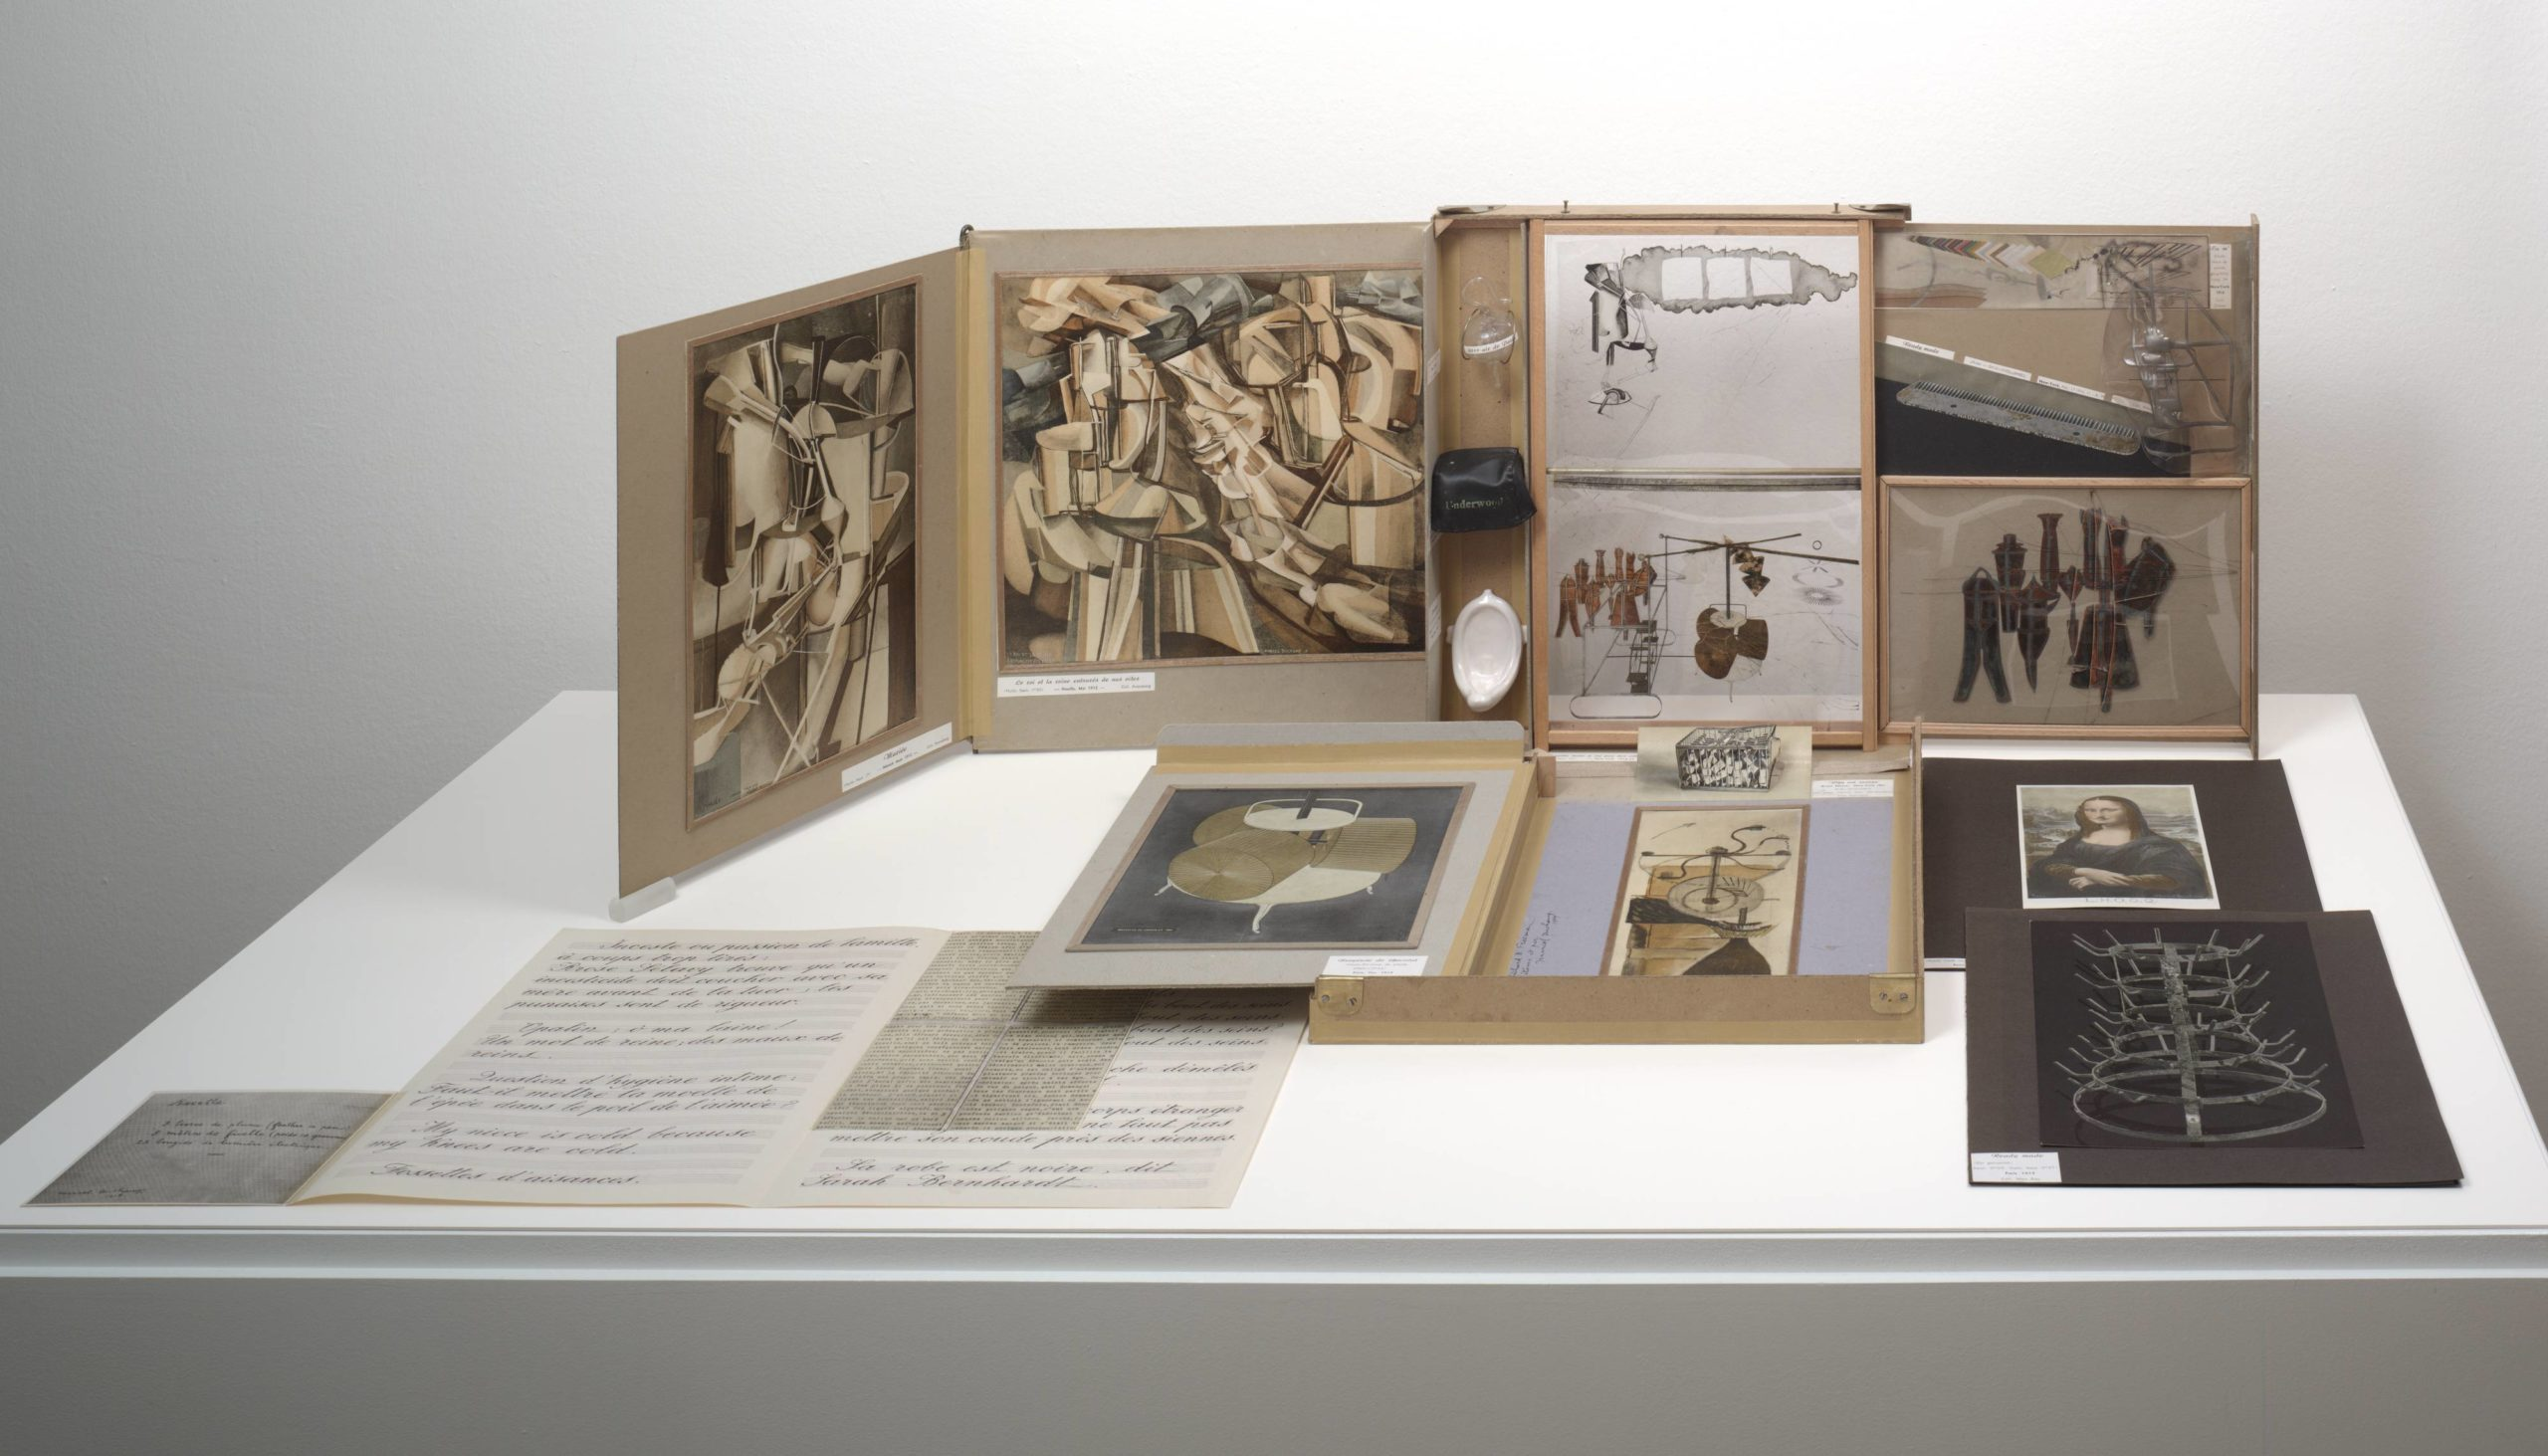 This work consists of dozens of reproductions, some sculptural, but most on paper, which can be stacked, bundled up, and stored in a cardboard box that fits inside a brown leather valise. When the valise is opened, several panels unfold from within to create, in essence, the walls of a small, portable museum. Miniatures of the artist's most famous sculptures are displayed in this tiny gallery, including 'Fountain', and '50cc air de Paris'. On the unfolded walls are prints of some of Duchamp's Cubist paintings, and photographs of elaborate sculptures. Additional prints and sheets of handwritten text can be removed from the valise and displayed lying flat, or standing upright on folding frames that resemble greeting cards. The loose pieces include a photo of Duchamp's sculpture 'Bottle Rack', and a [doctored] print of Leonardo da Vinci's 'Mona Lisa'.